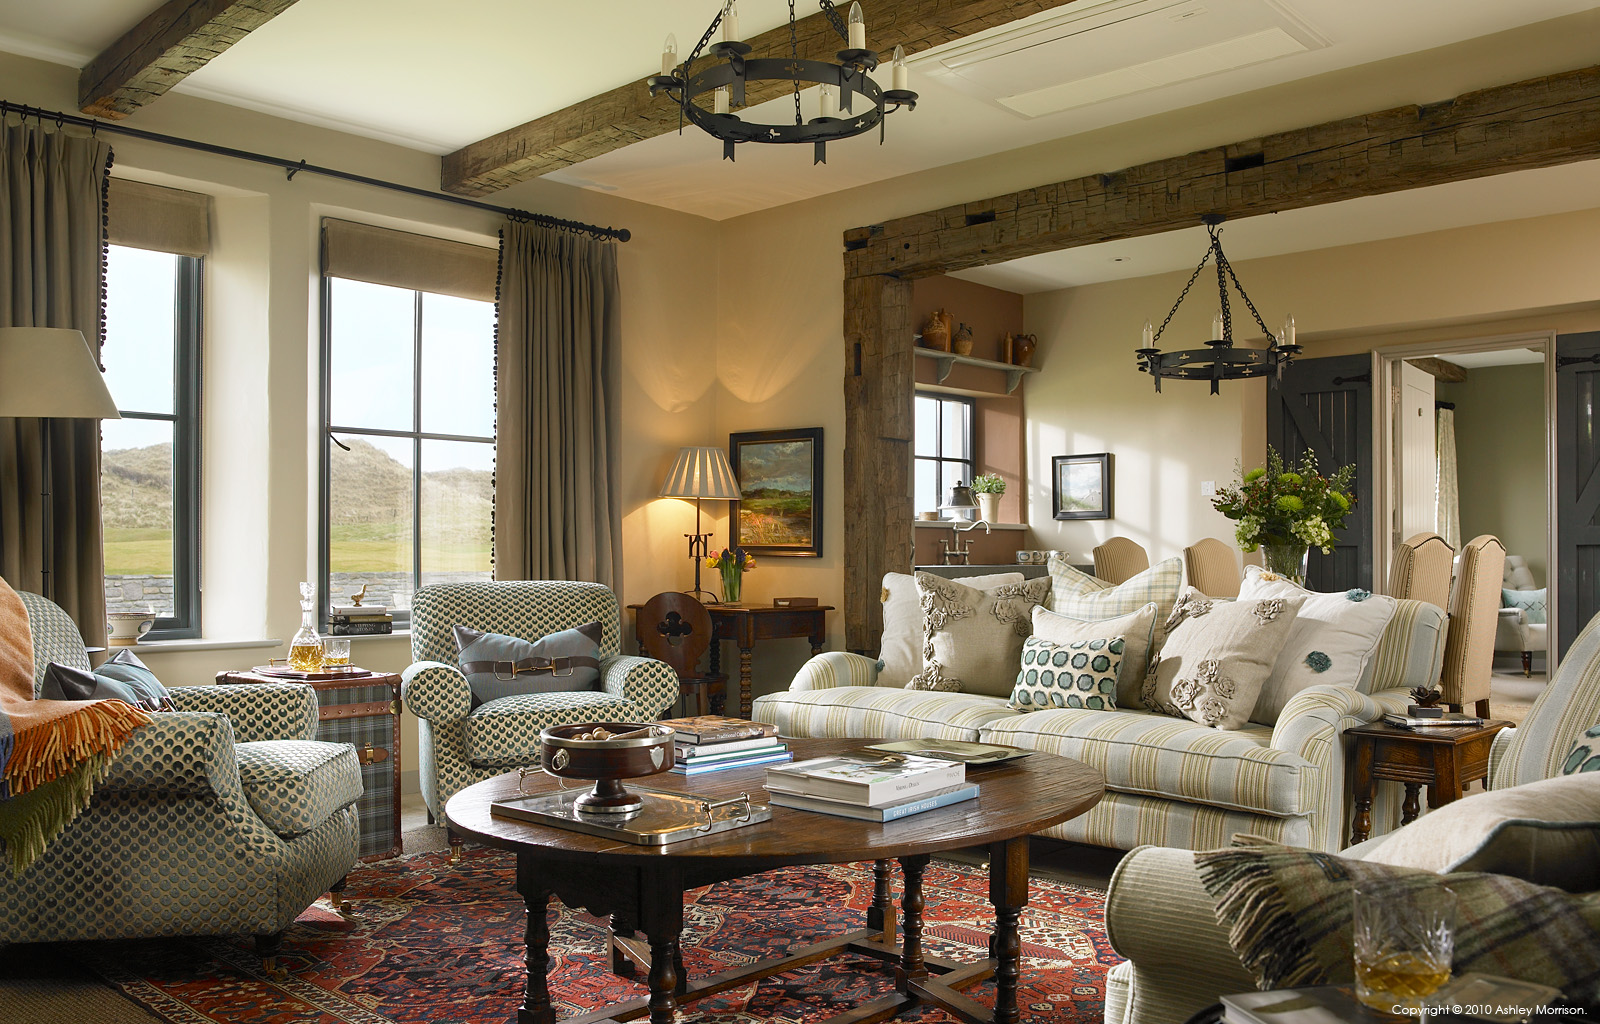 The sitting room area in one of the Link Cottages at the Trump International Golf Links & Hotel in County Clare.